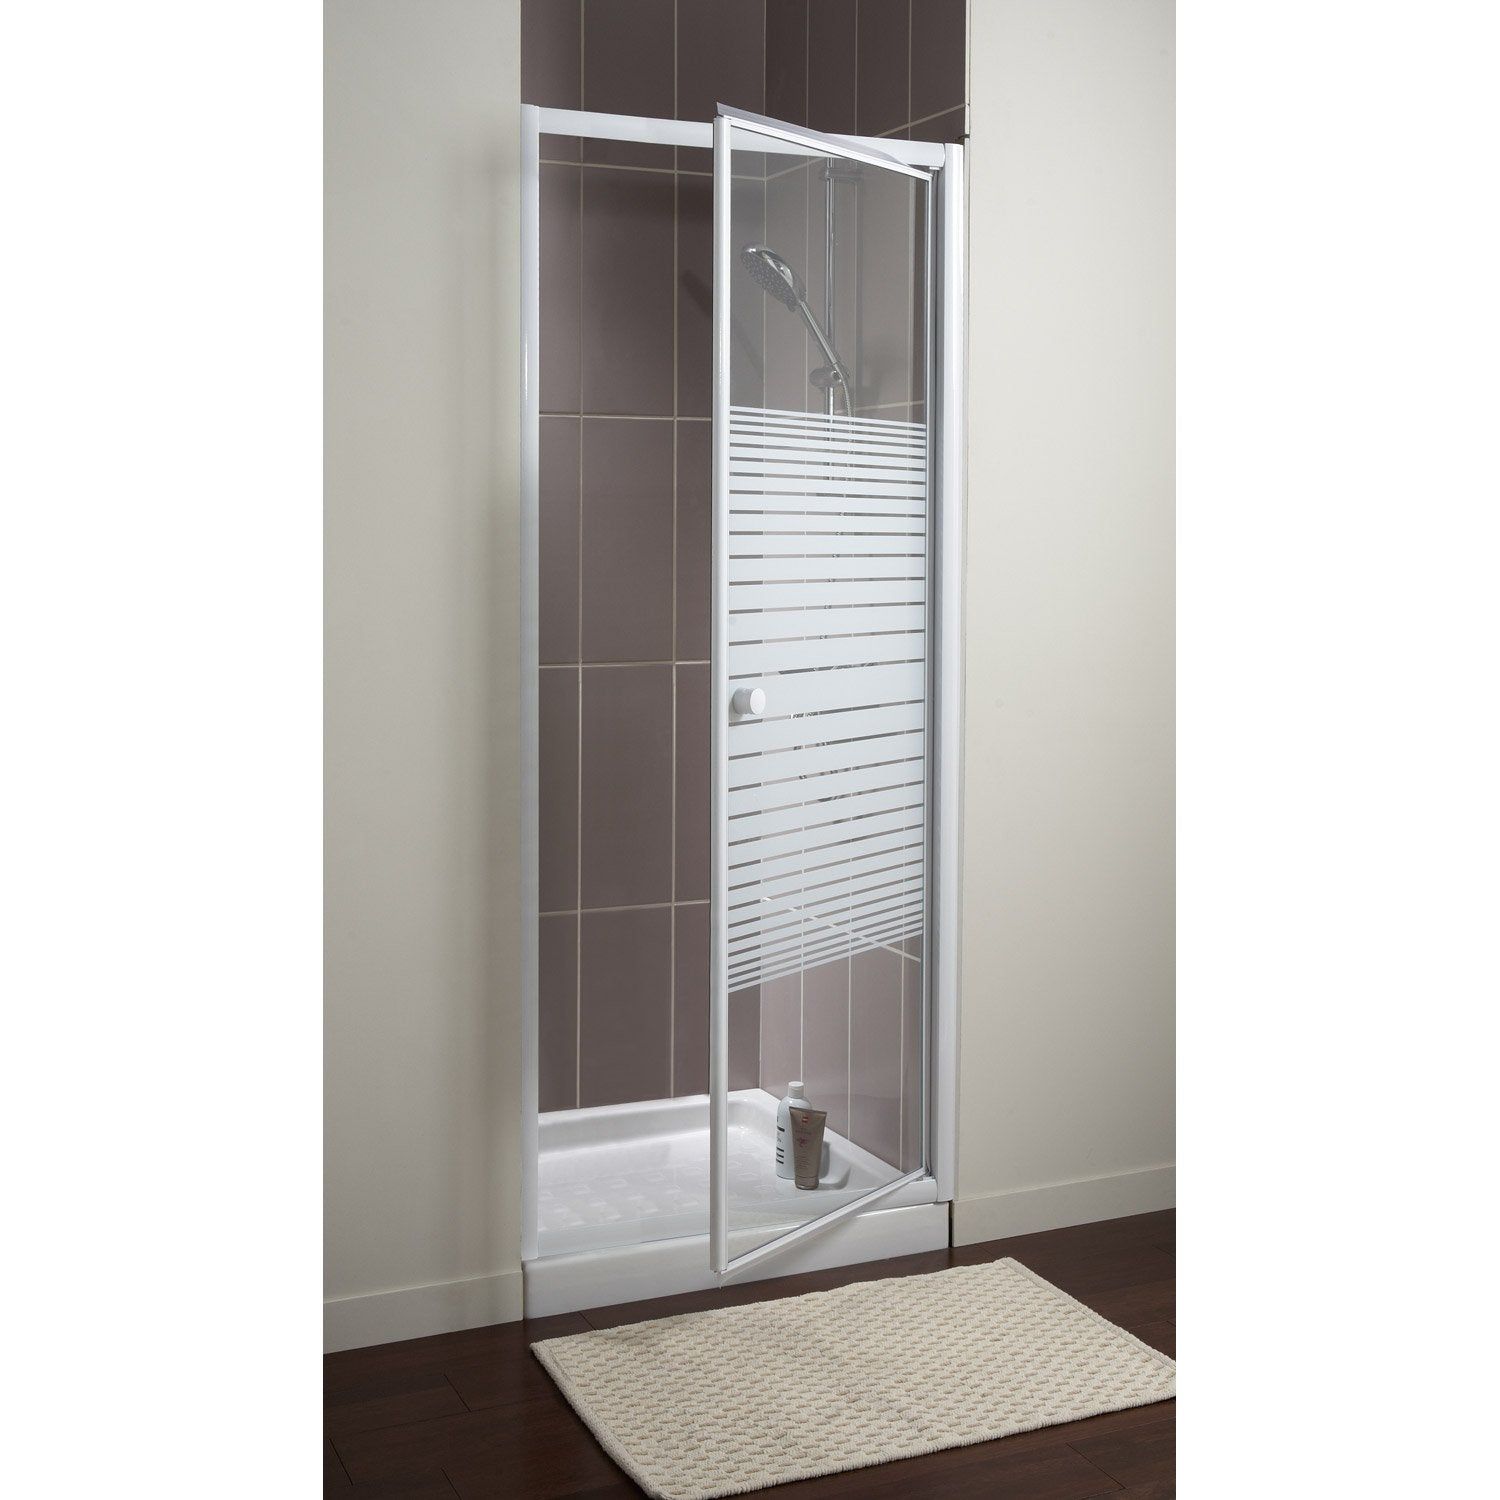 porte de douche pivotante 68 71 cm profil blanc primo leroy merlin. Black Bedroom Furniture Sets. Home Design Ideas